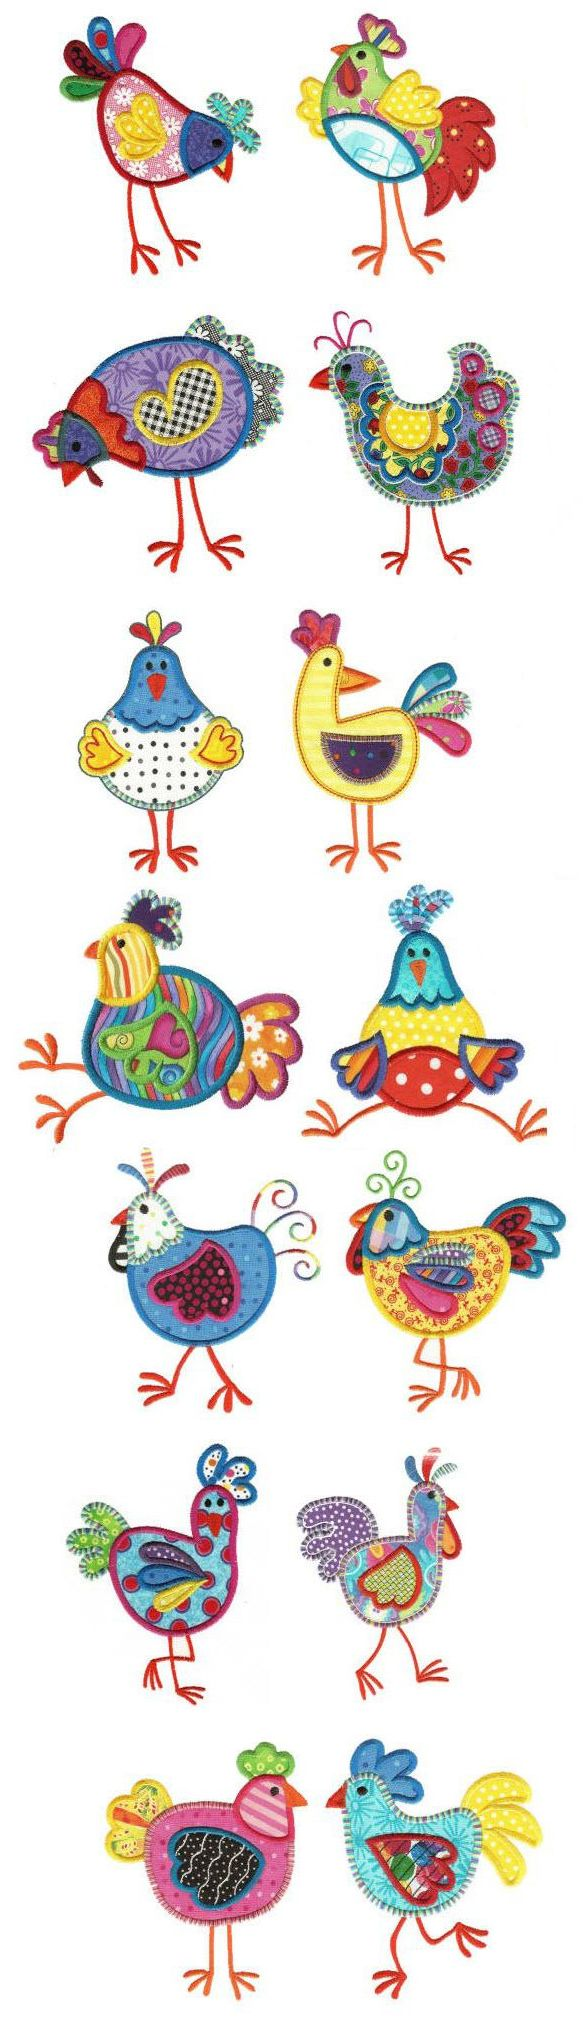 Funky Chickens Applique available for instant download at www.designsbyjuju.com